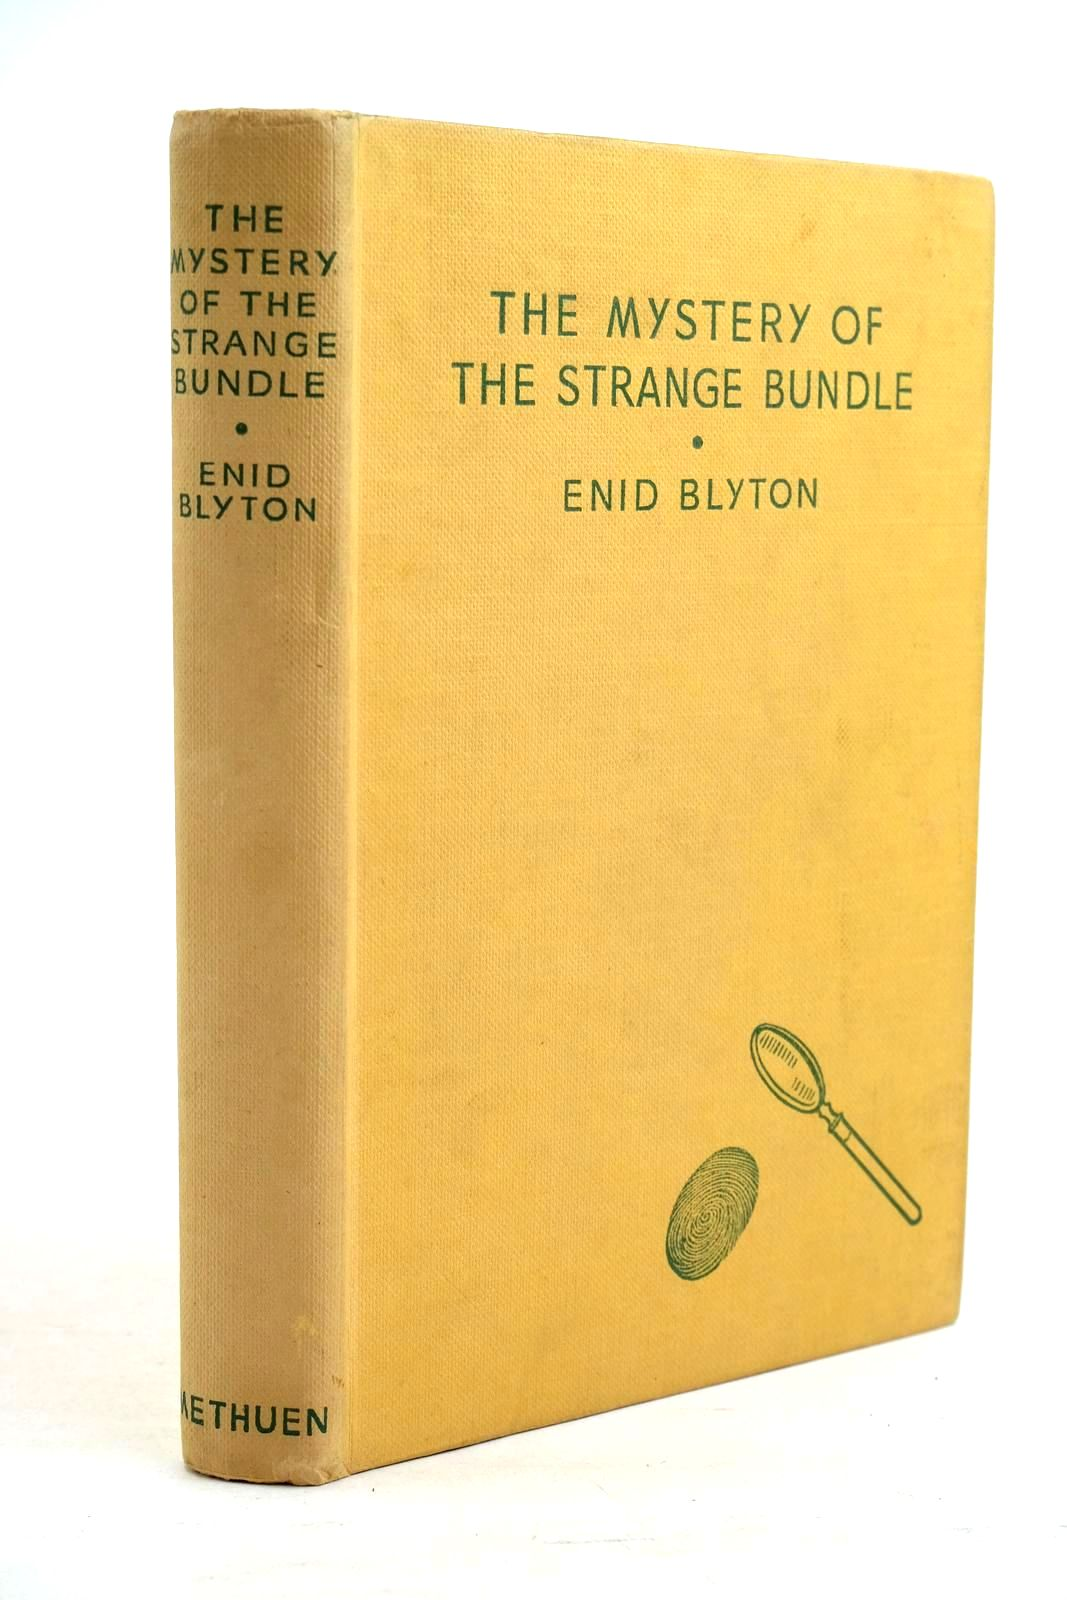 Photo of THE MYSTERY OF THE STRANGE BUNDLE written by Blyton, Enid illustrated by Evans, Treyer published by Methuen & Co. Ltd. (STOCK CODE: 1320725)  for sale by Stella & Rose's Books